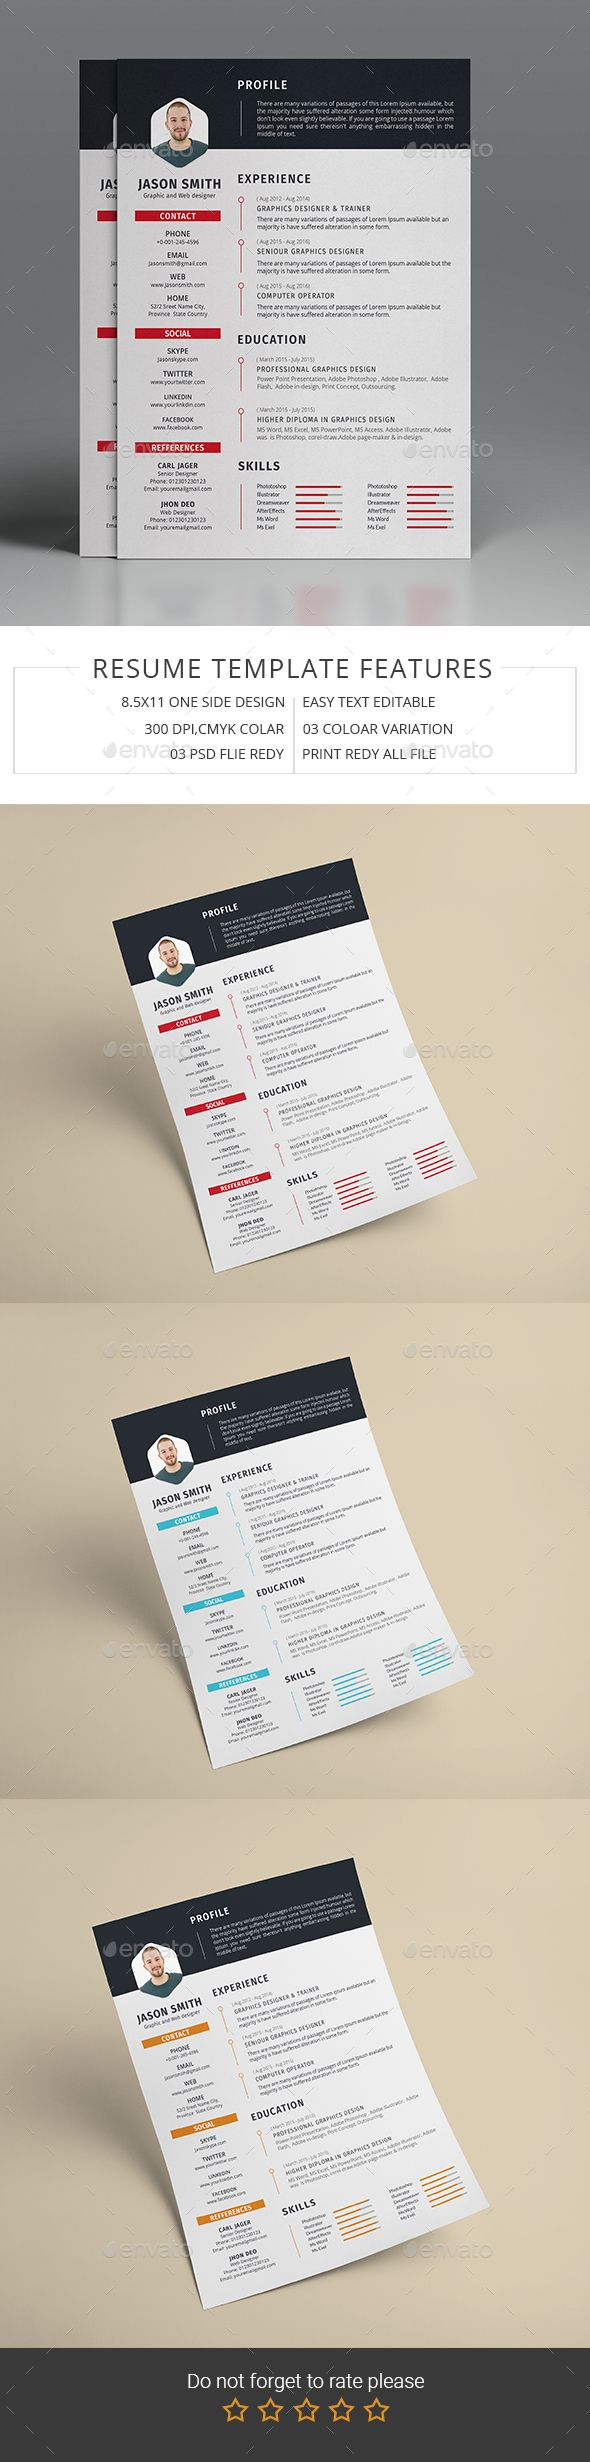 Best Resume Templates Images On   Resume Curriculum